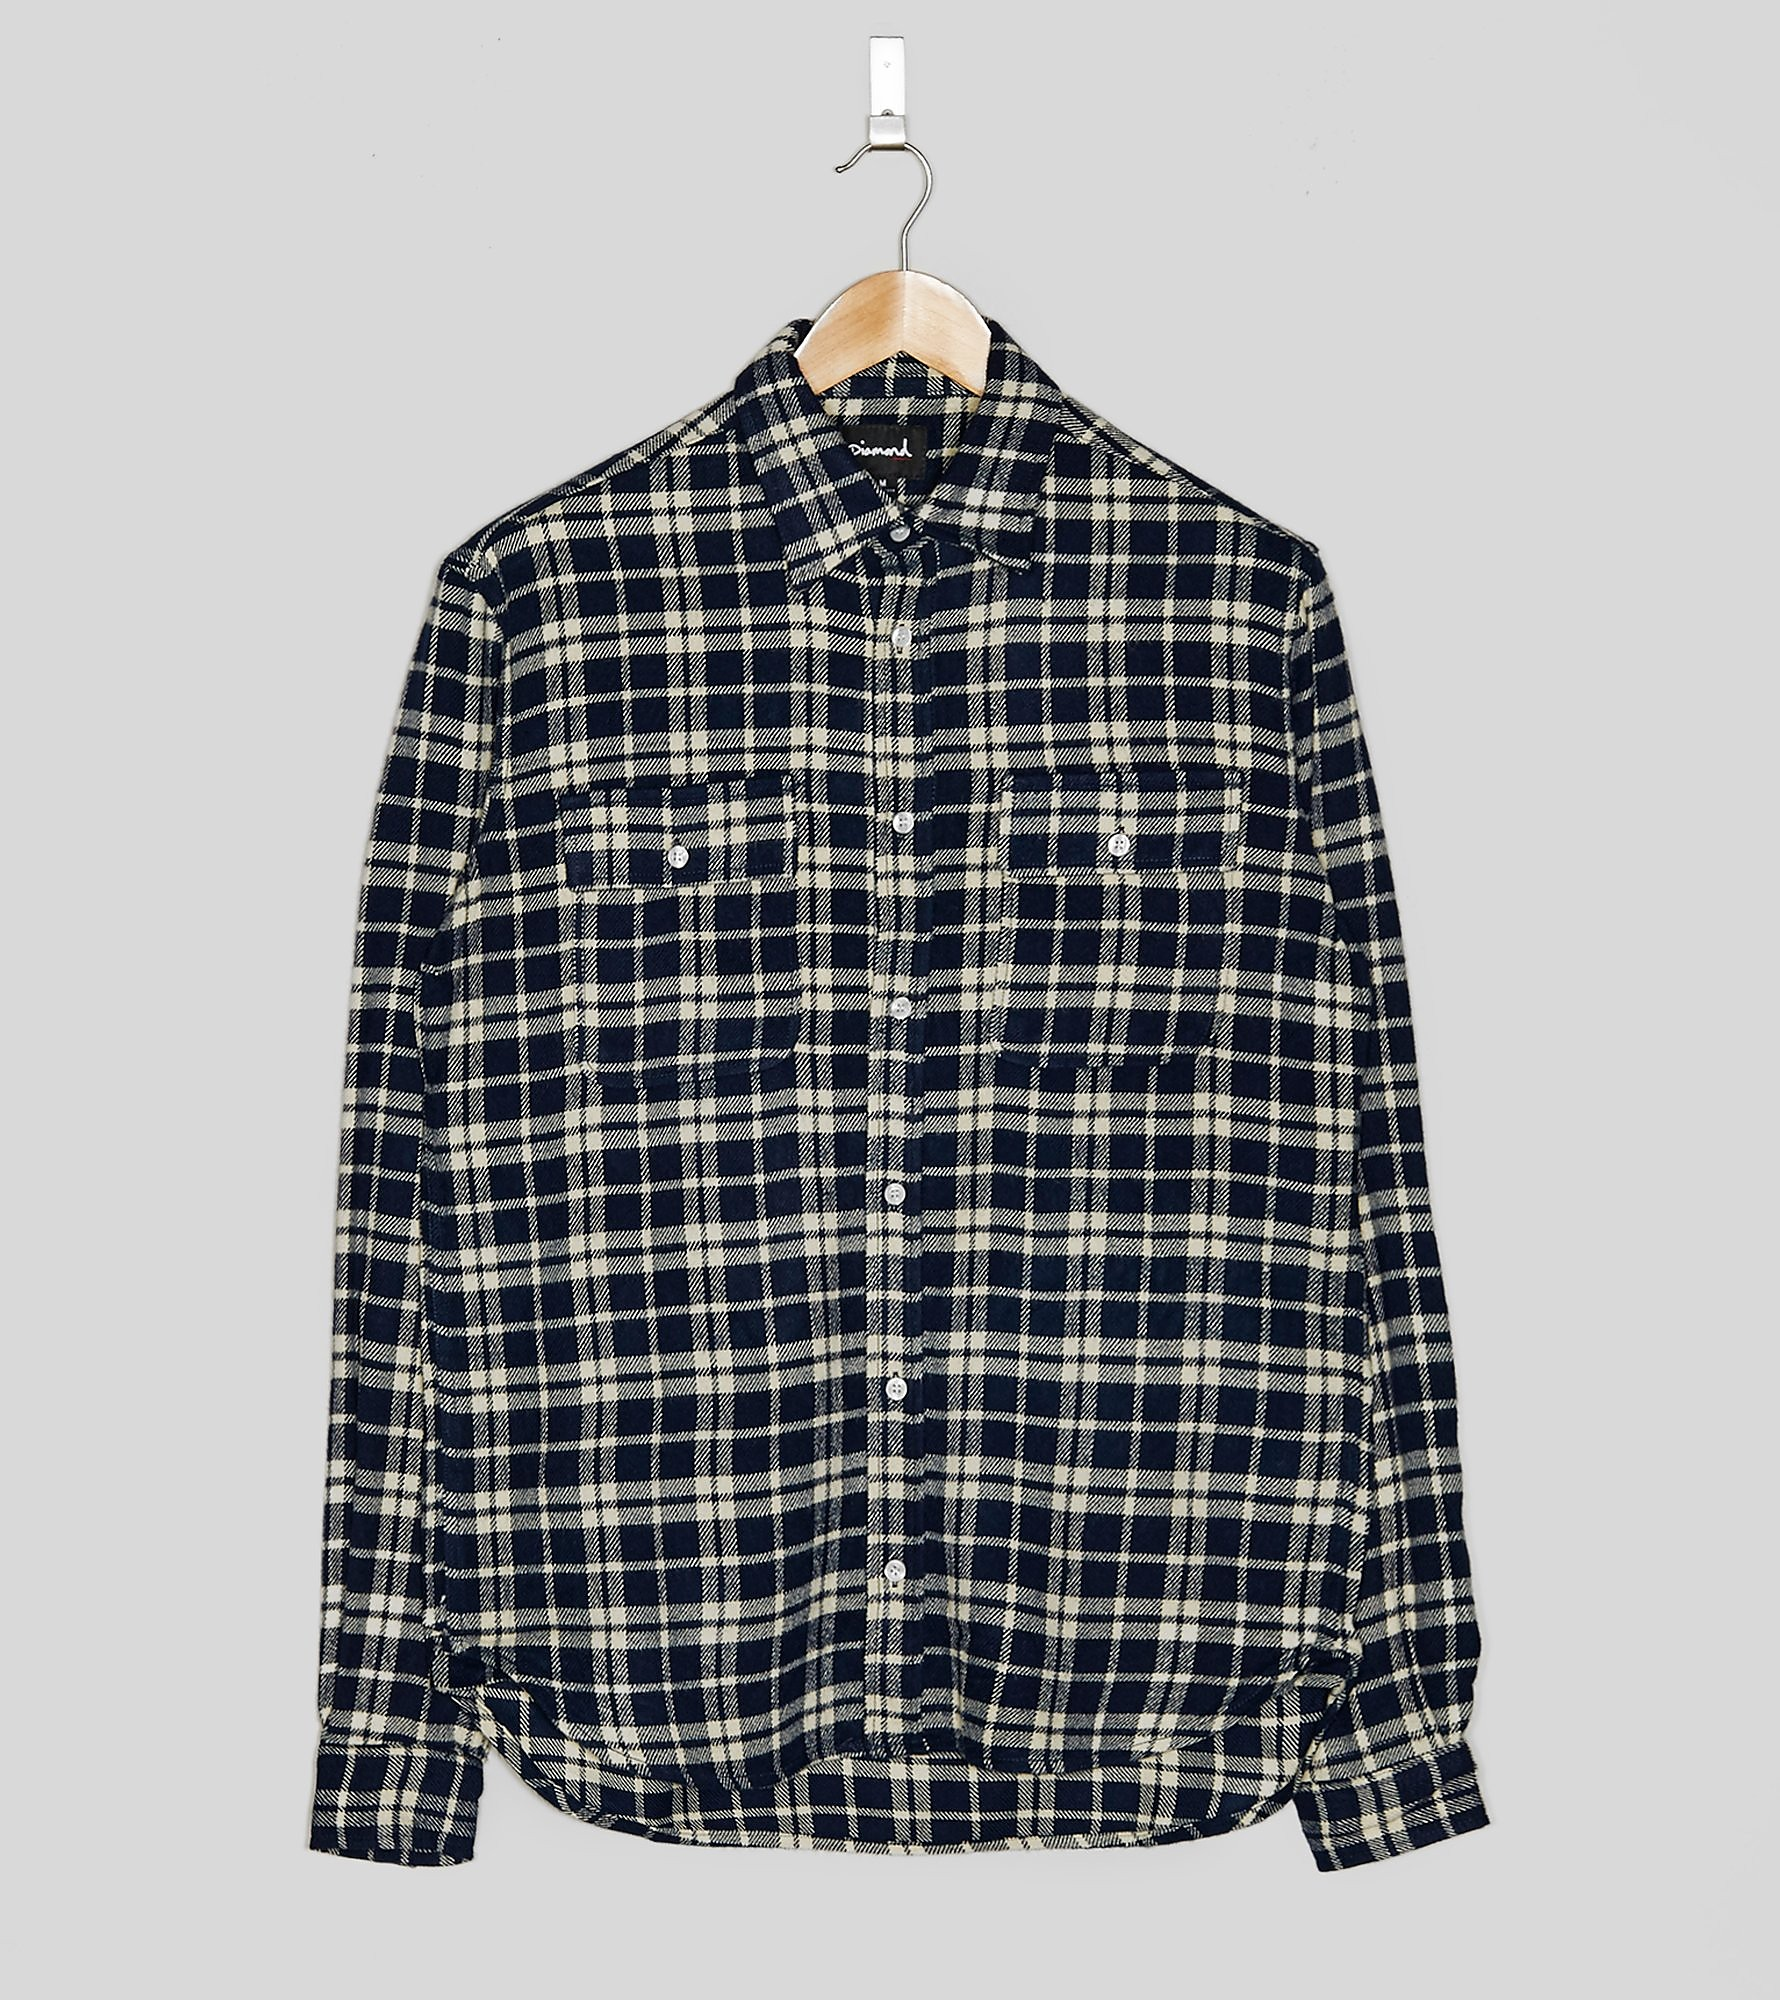 Diamond Supply Baker Plaid Long Sleeved Shirt, Navy